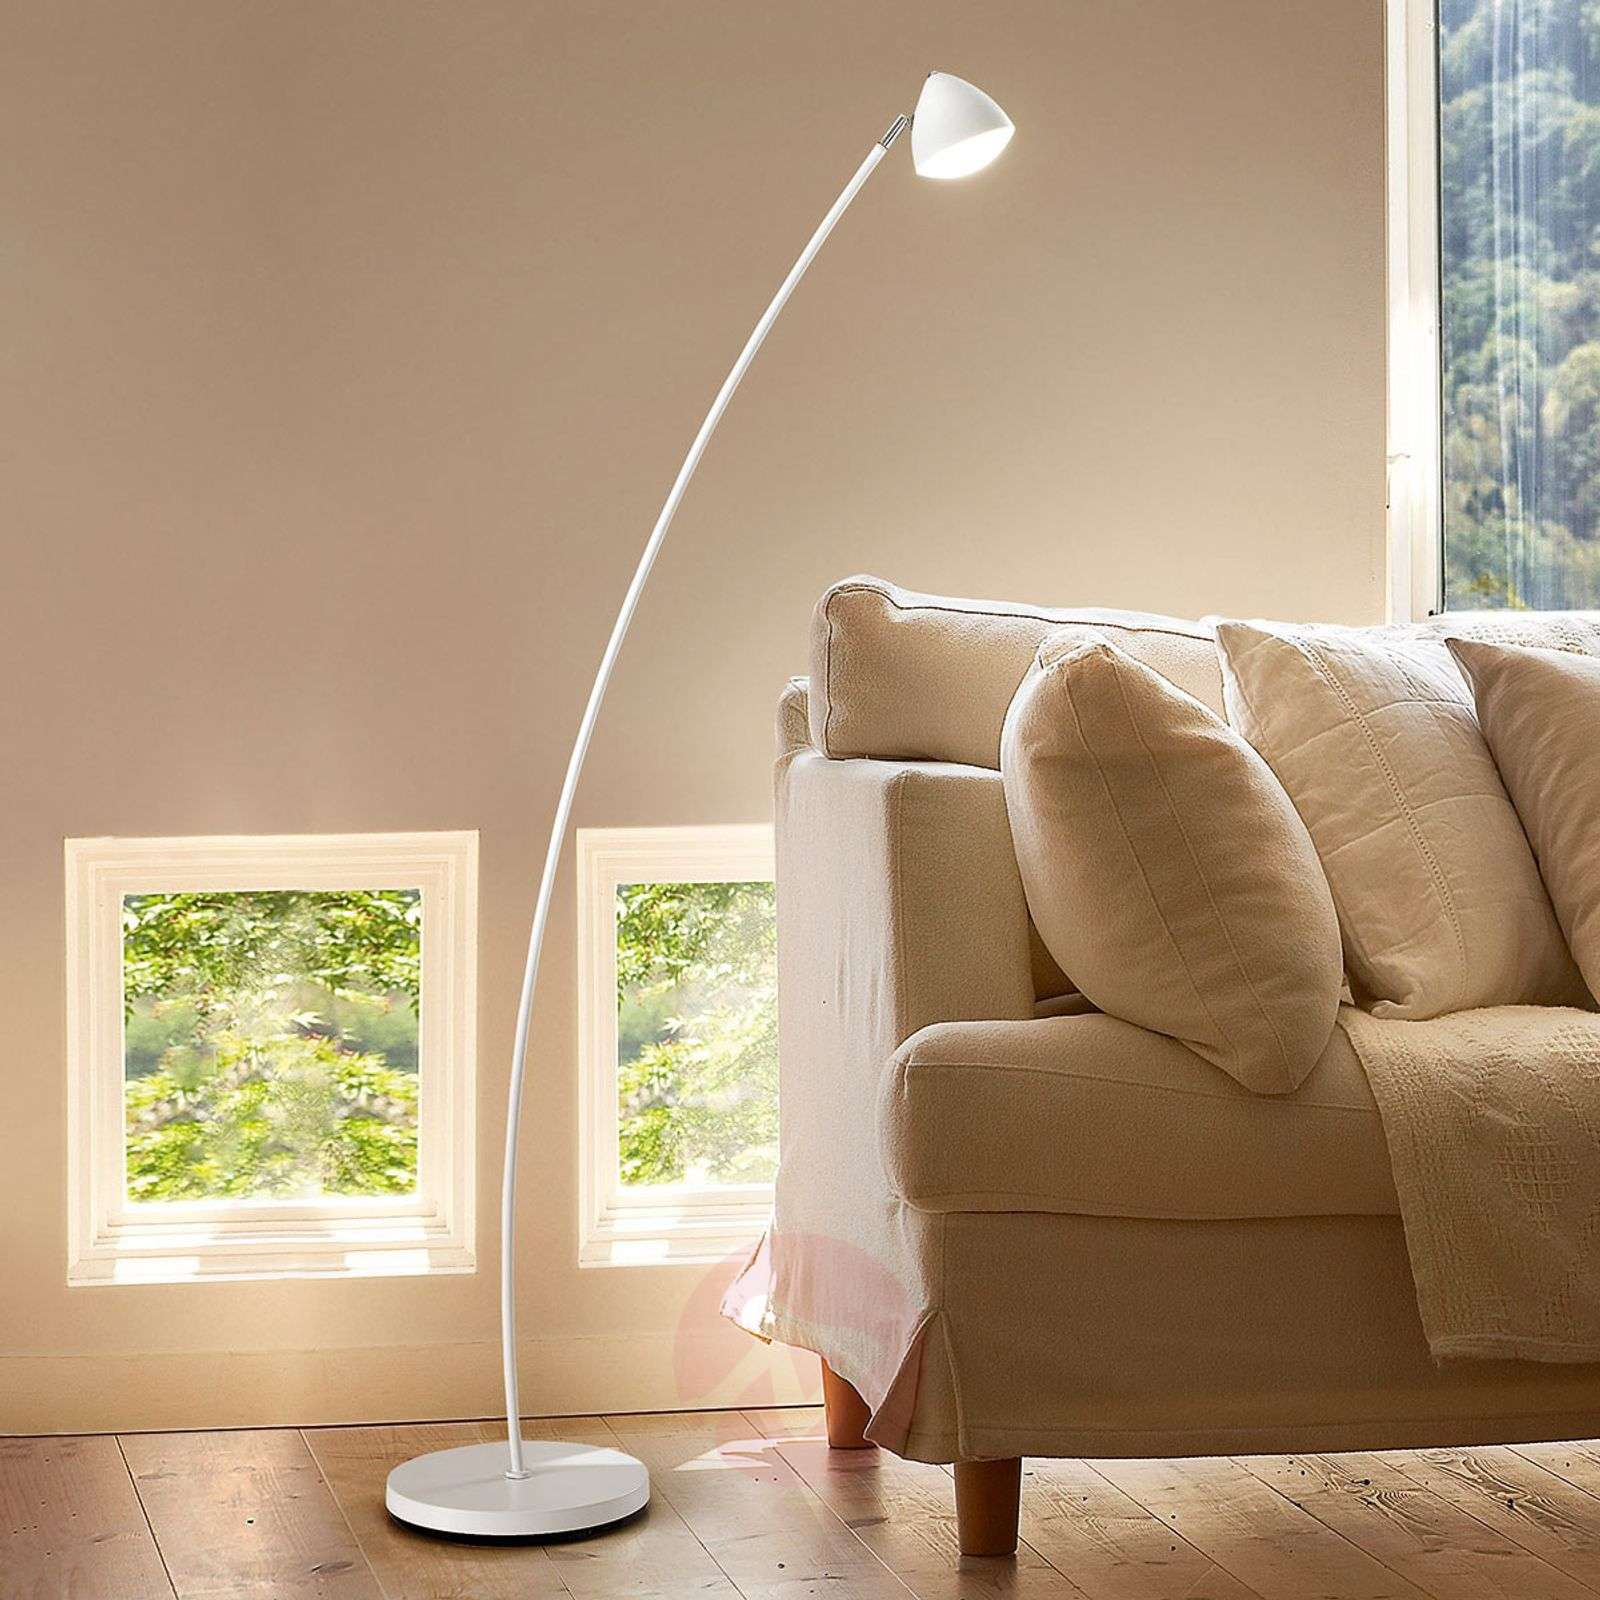 Slightly Bent Bike Led Floor Lamp With Dimmer Lights Ie